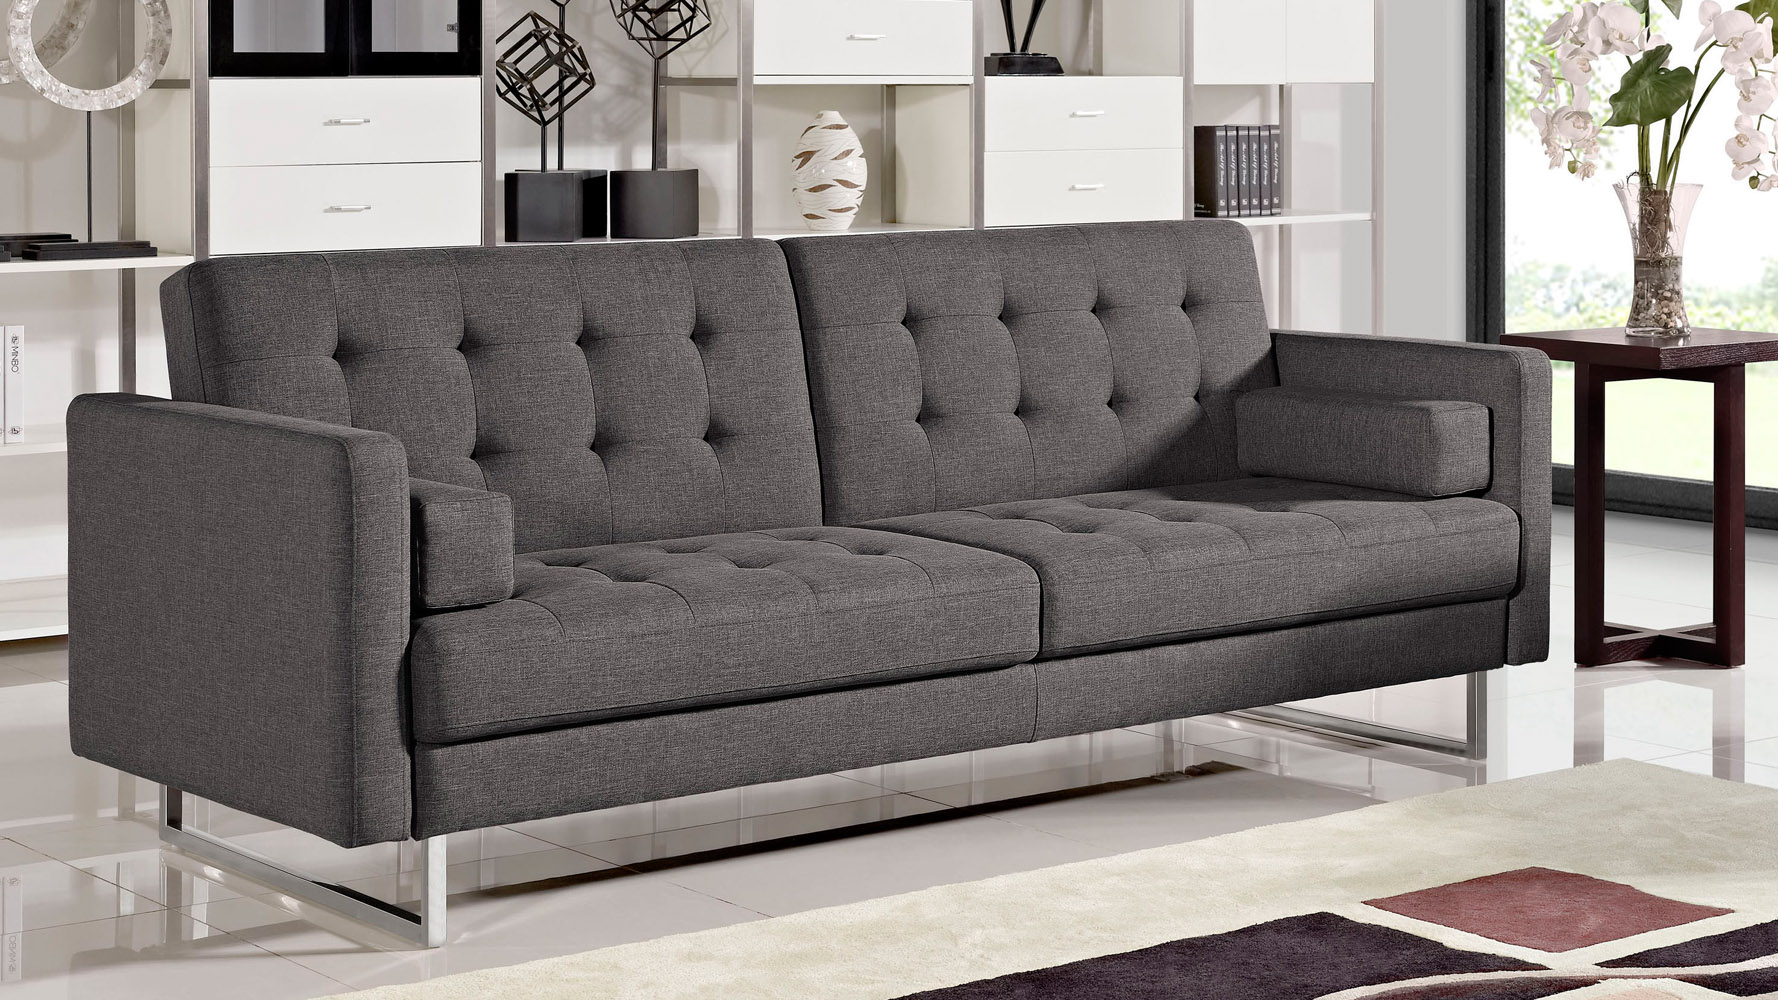 Sofas Sleeper And Chairs